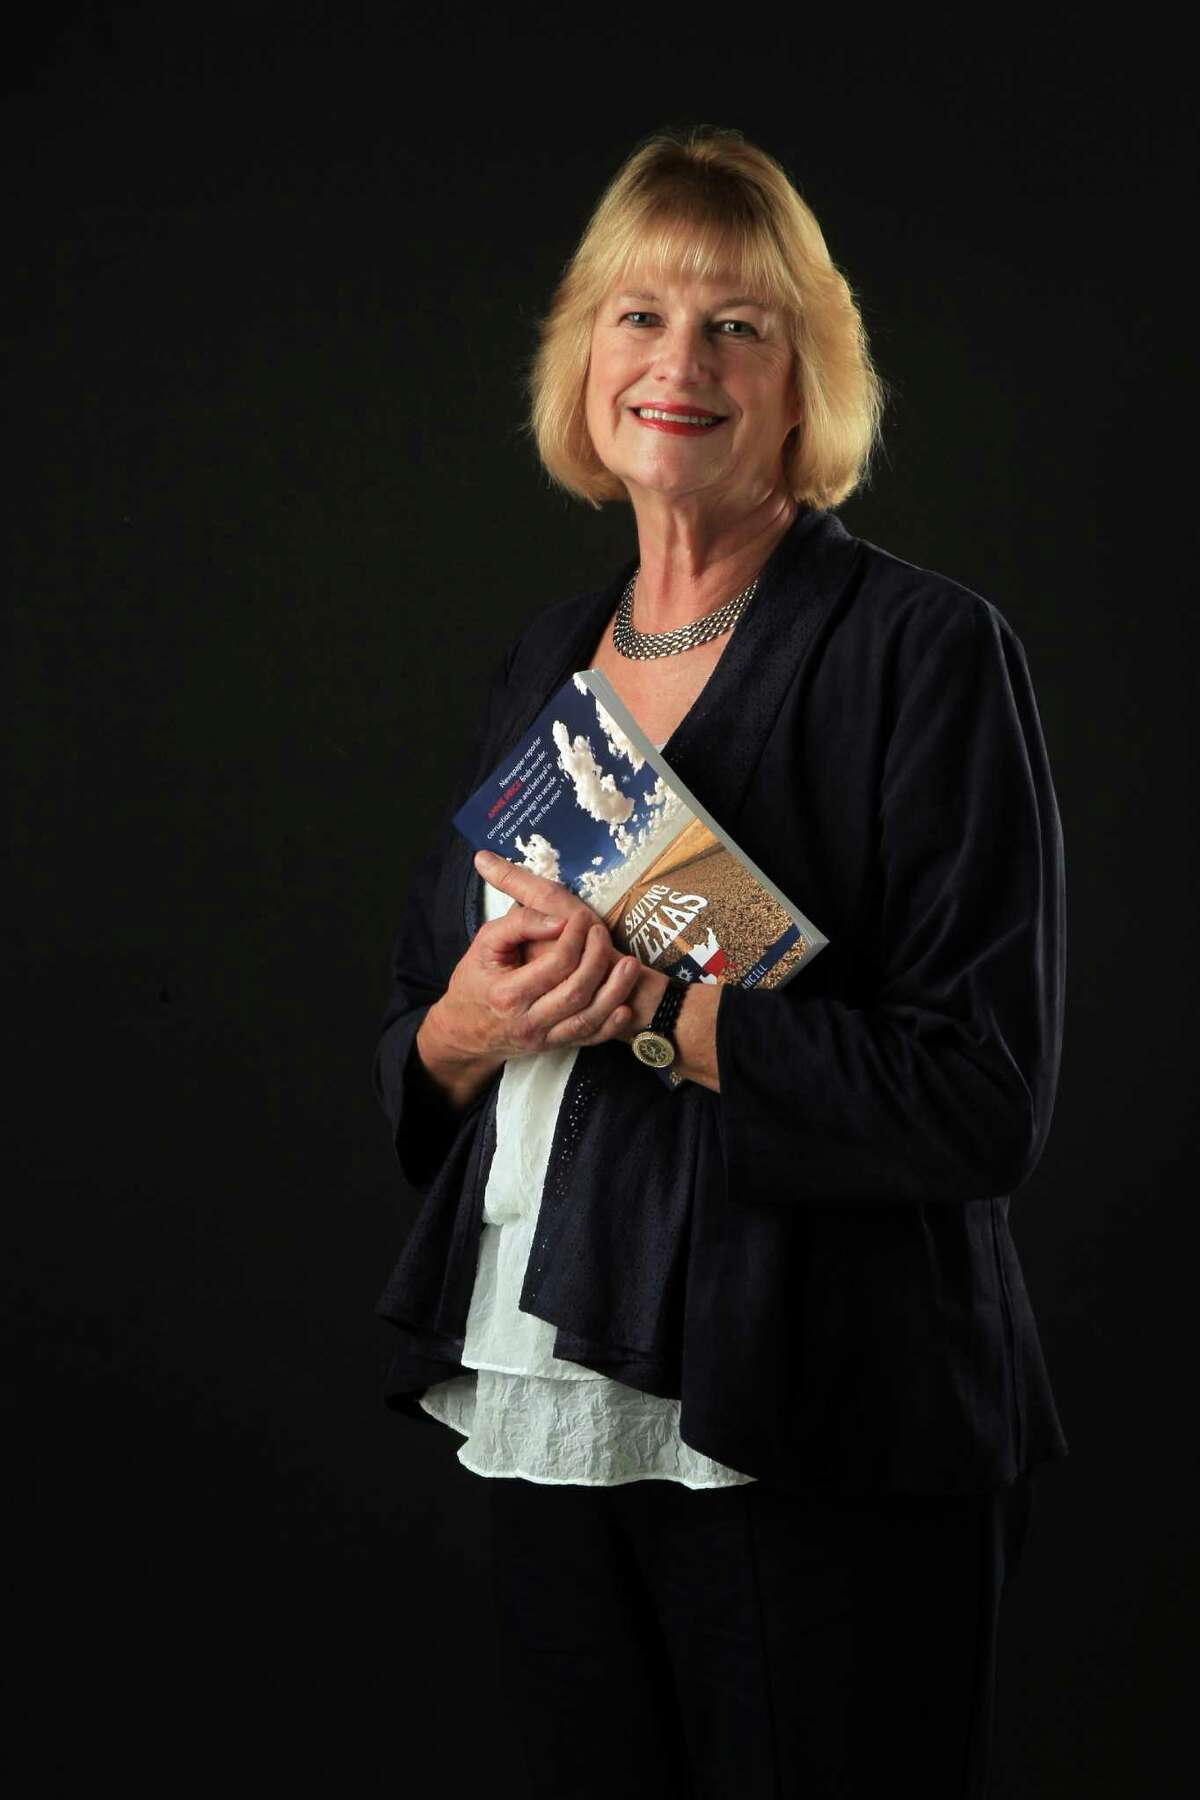 Nancy Stancill has written a murder mystery book based in Texas called Saving Texas on Tuesday, Oct. 22, 2013, in Houston. ( Mayra Beltran / Houston Chronicle )